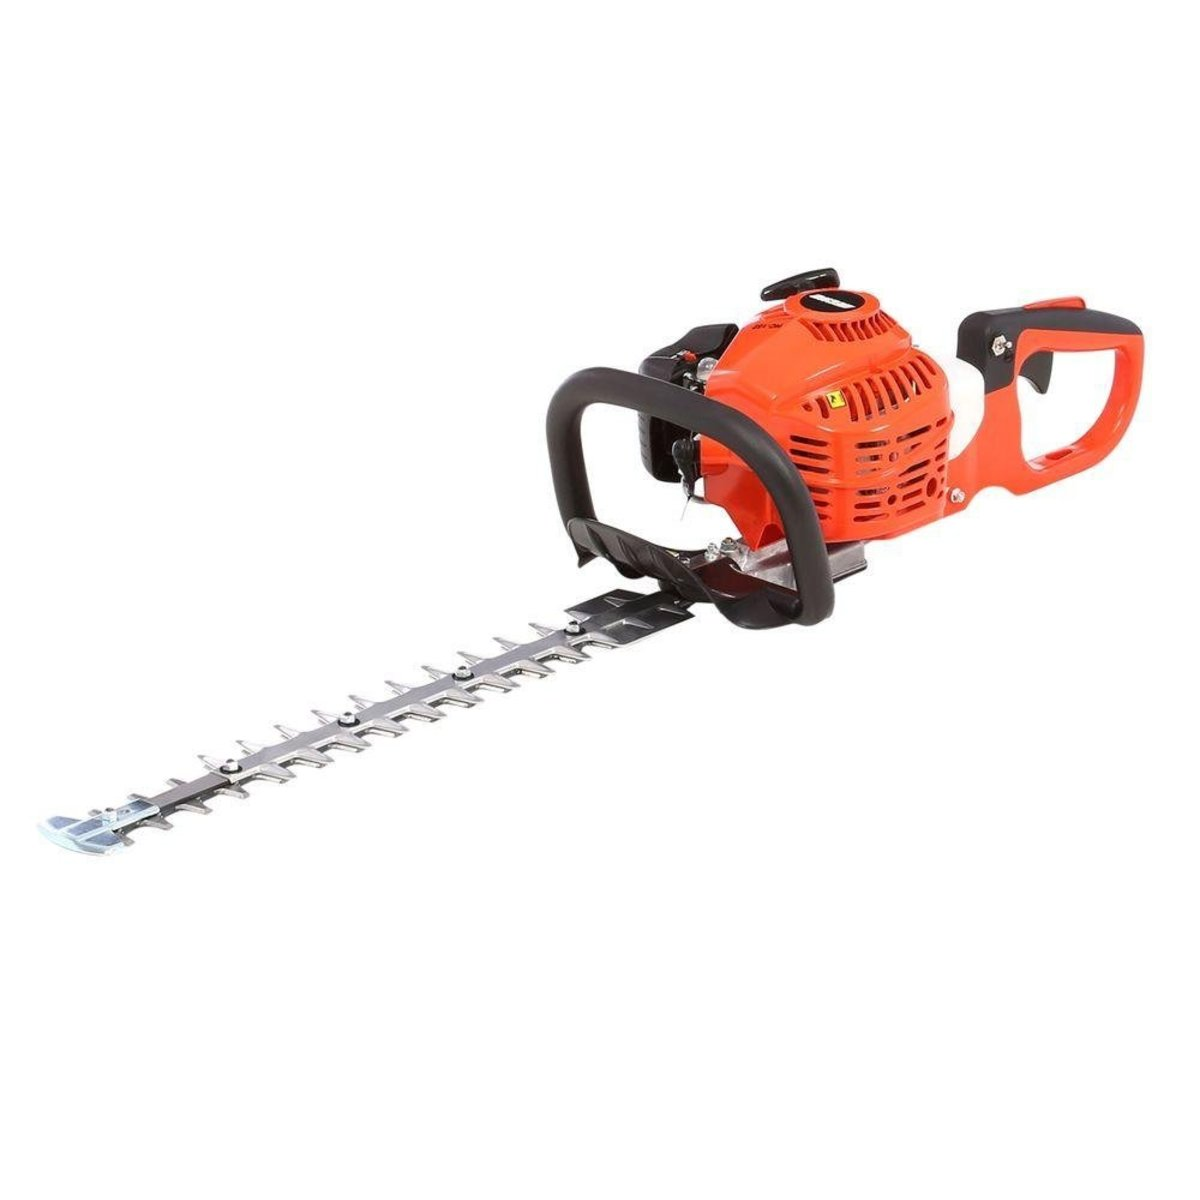 The Echo HC-152 gas-powered hedge trimmer is powered by a 21.2 cc professional-grade, 2-stroke engine, giving you the strength to tackle a large and challenging trimming job.  The commercial-duty air filtration system enables a long engine endurance.